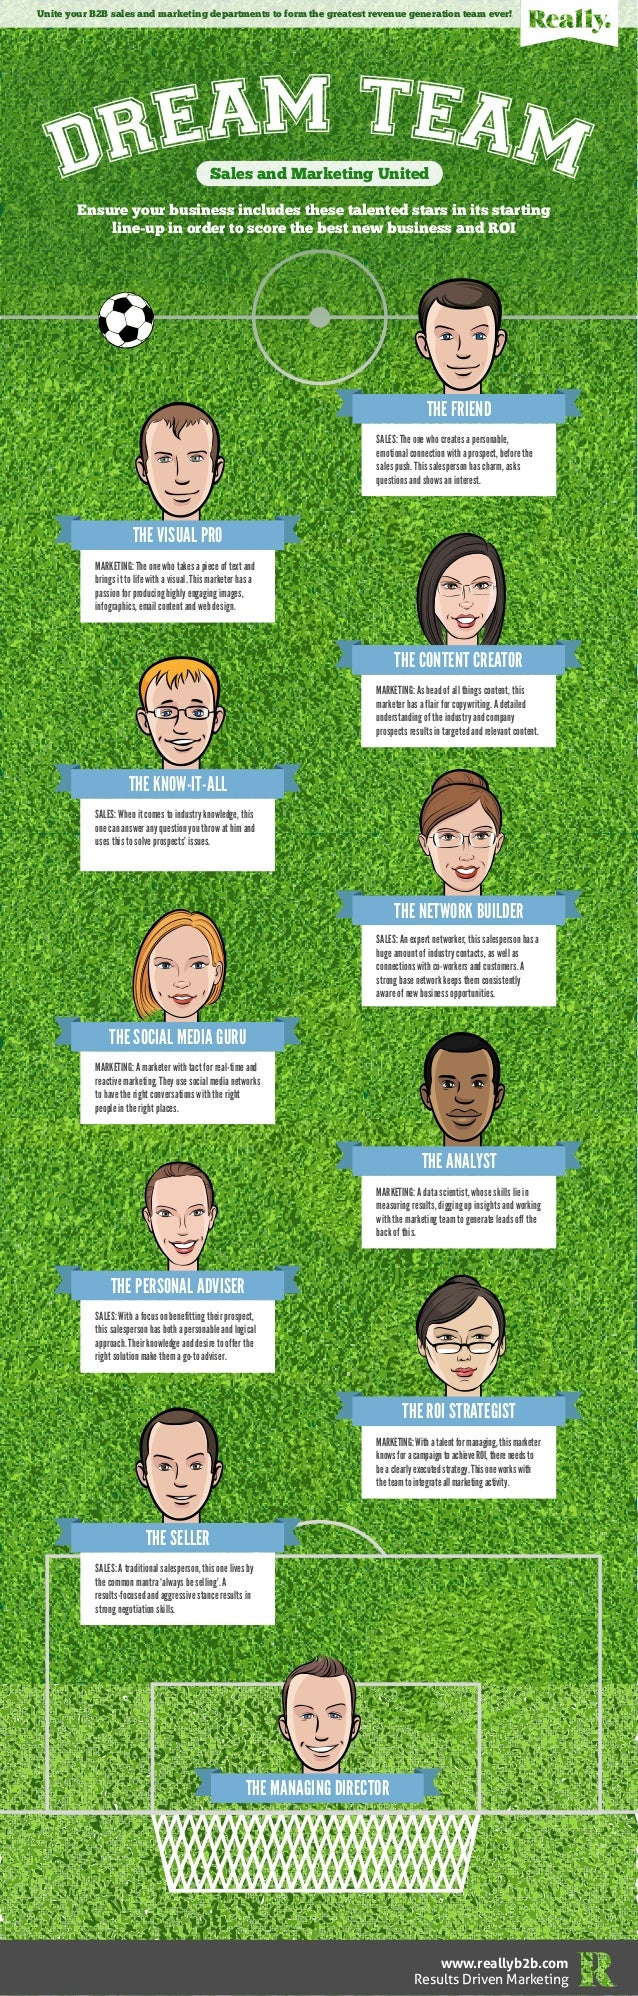 The B2B Sales and Marketing Dream Team Infographic